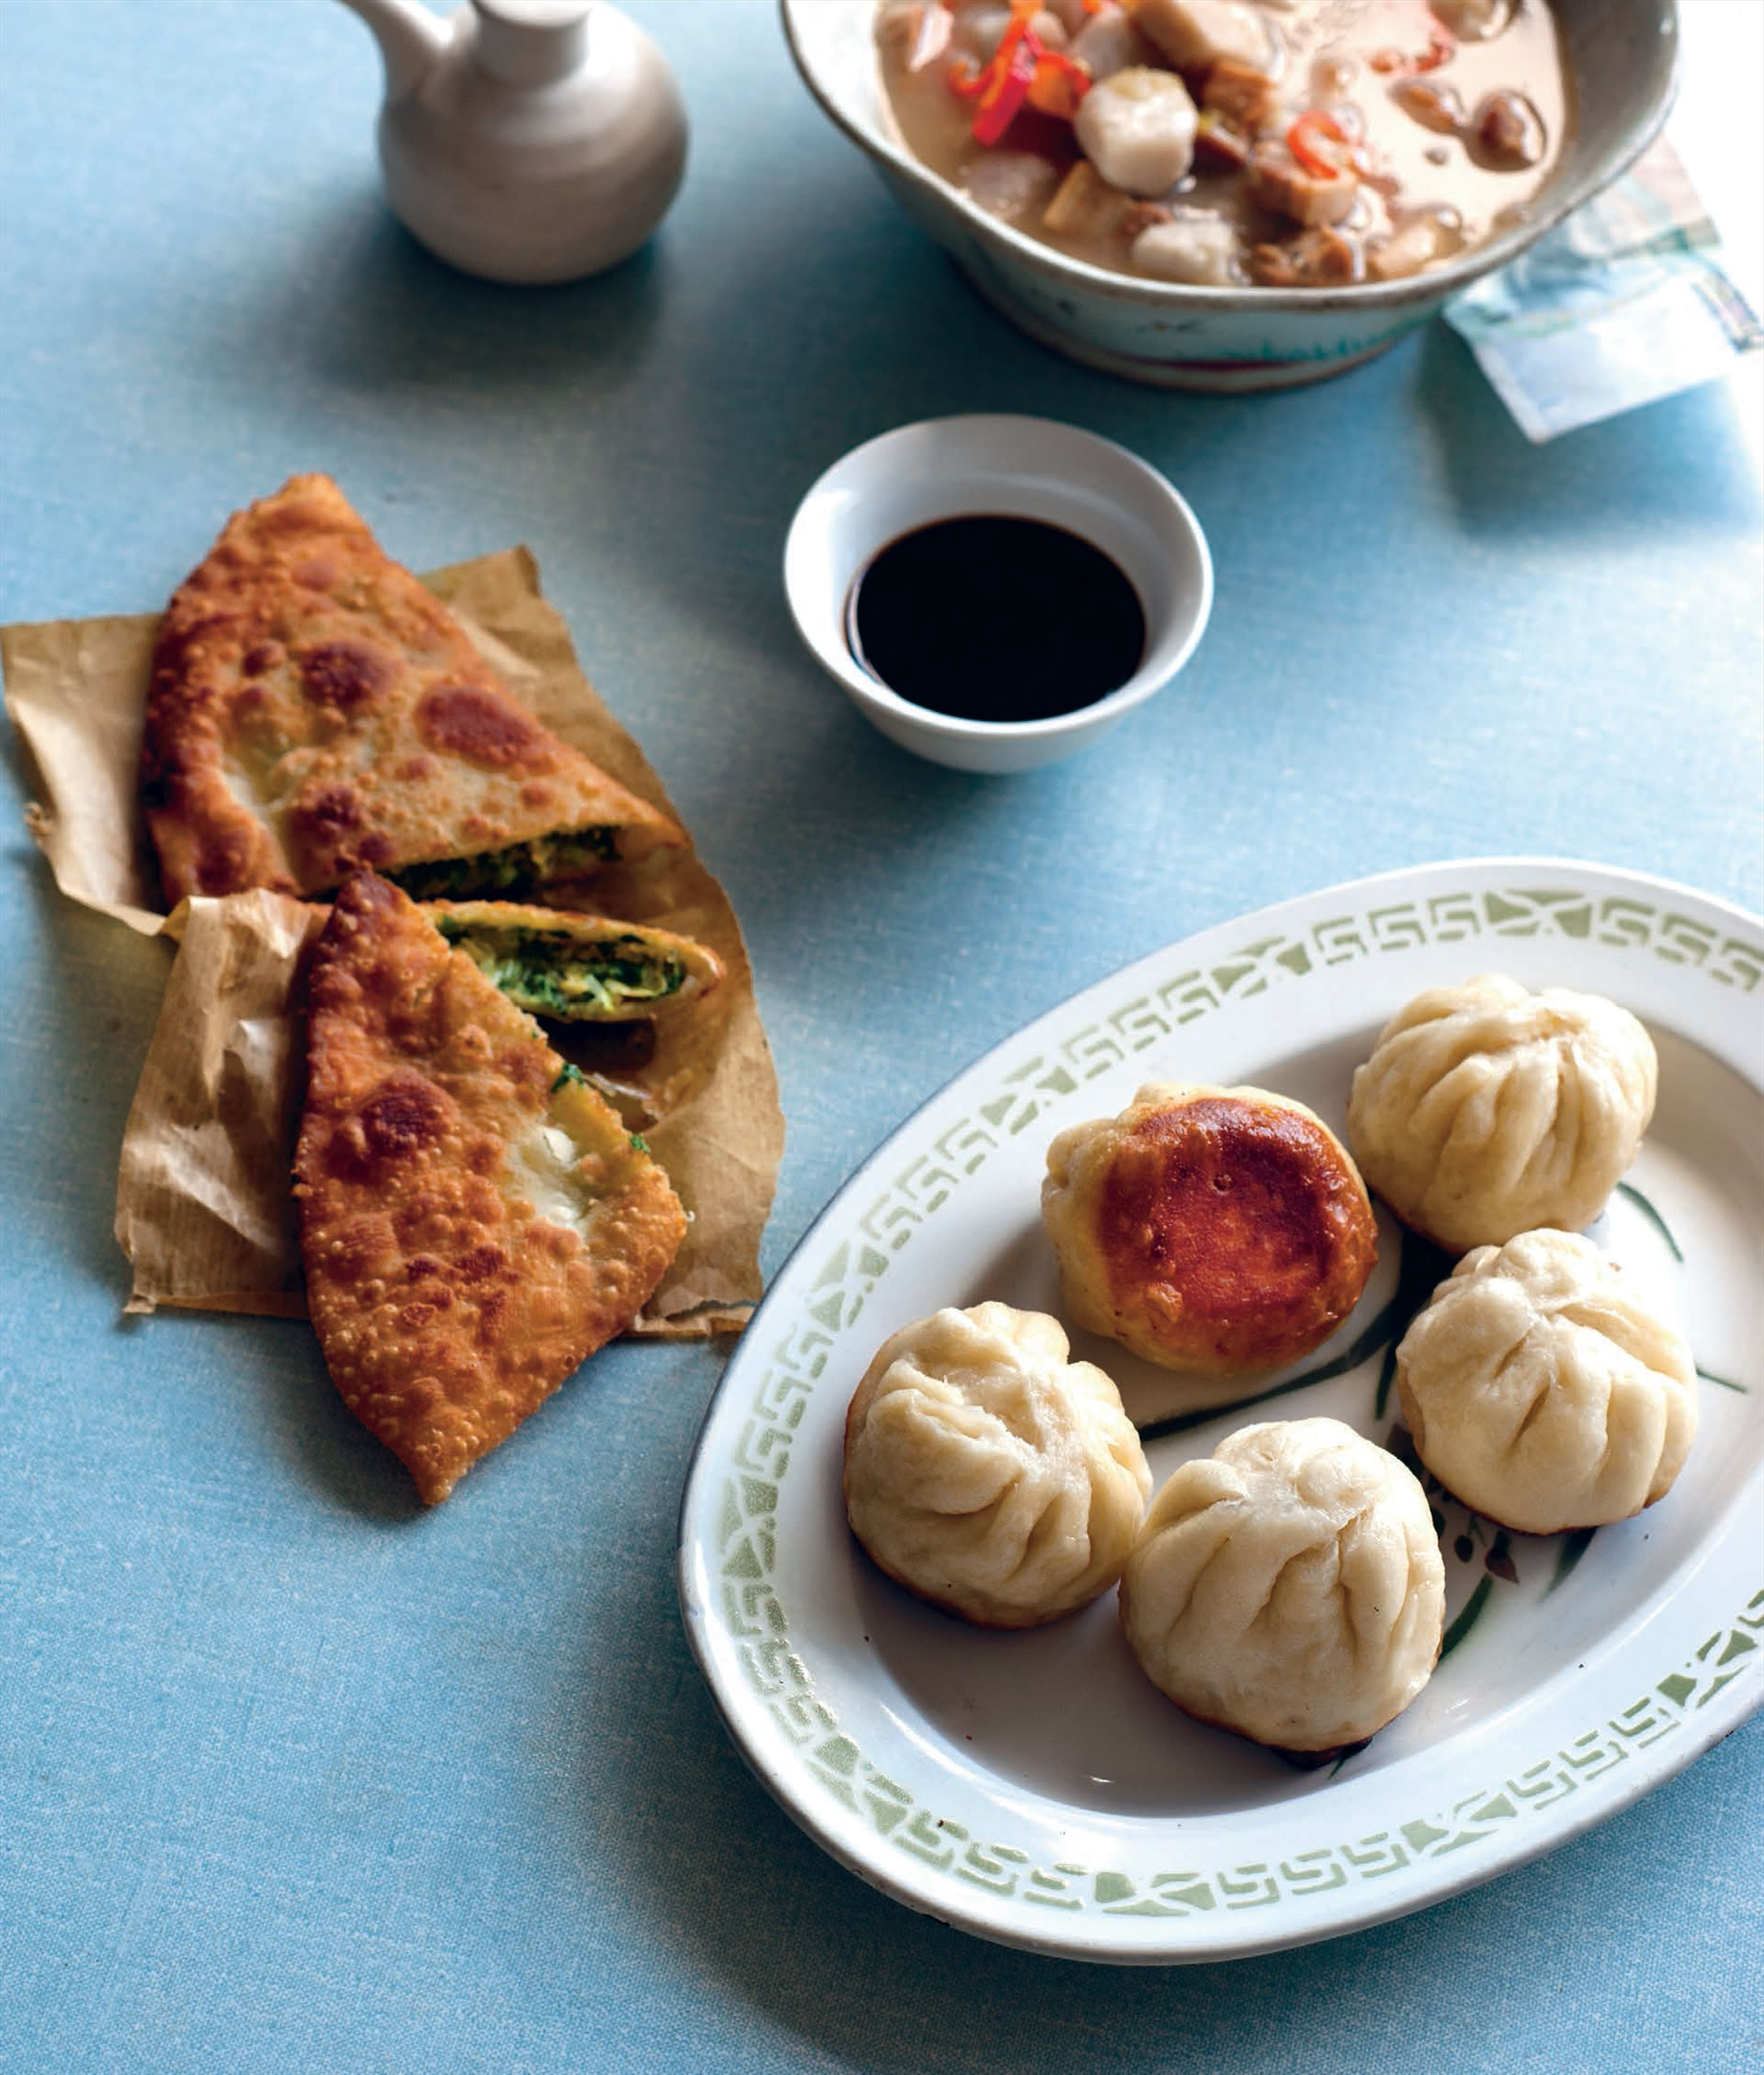 Steam-fried pork buns